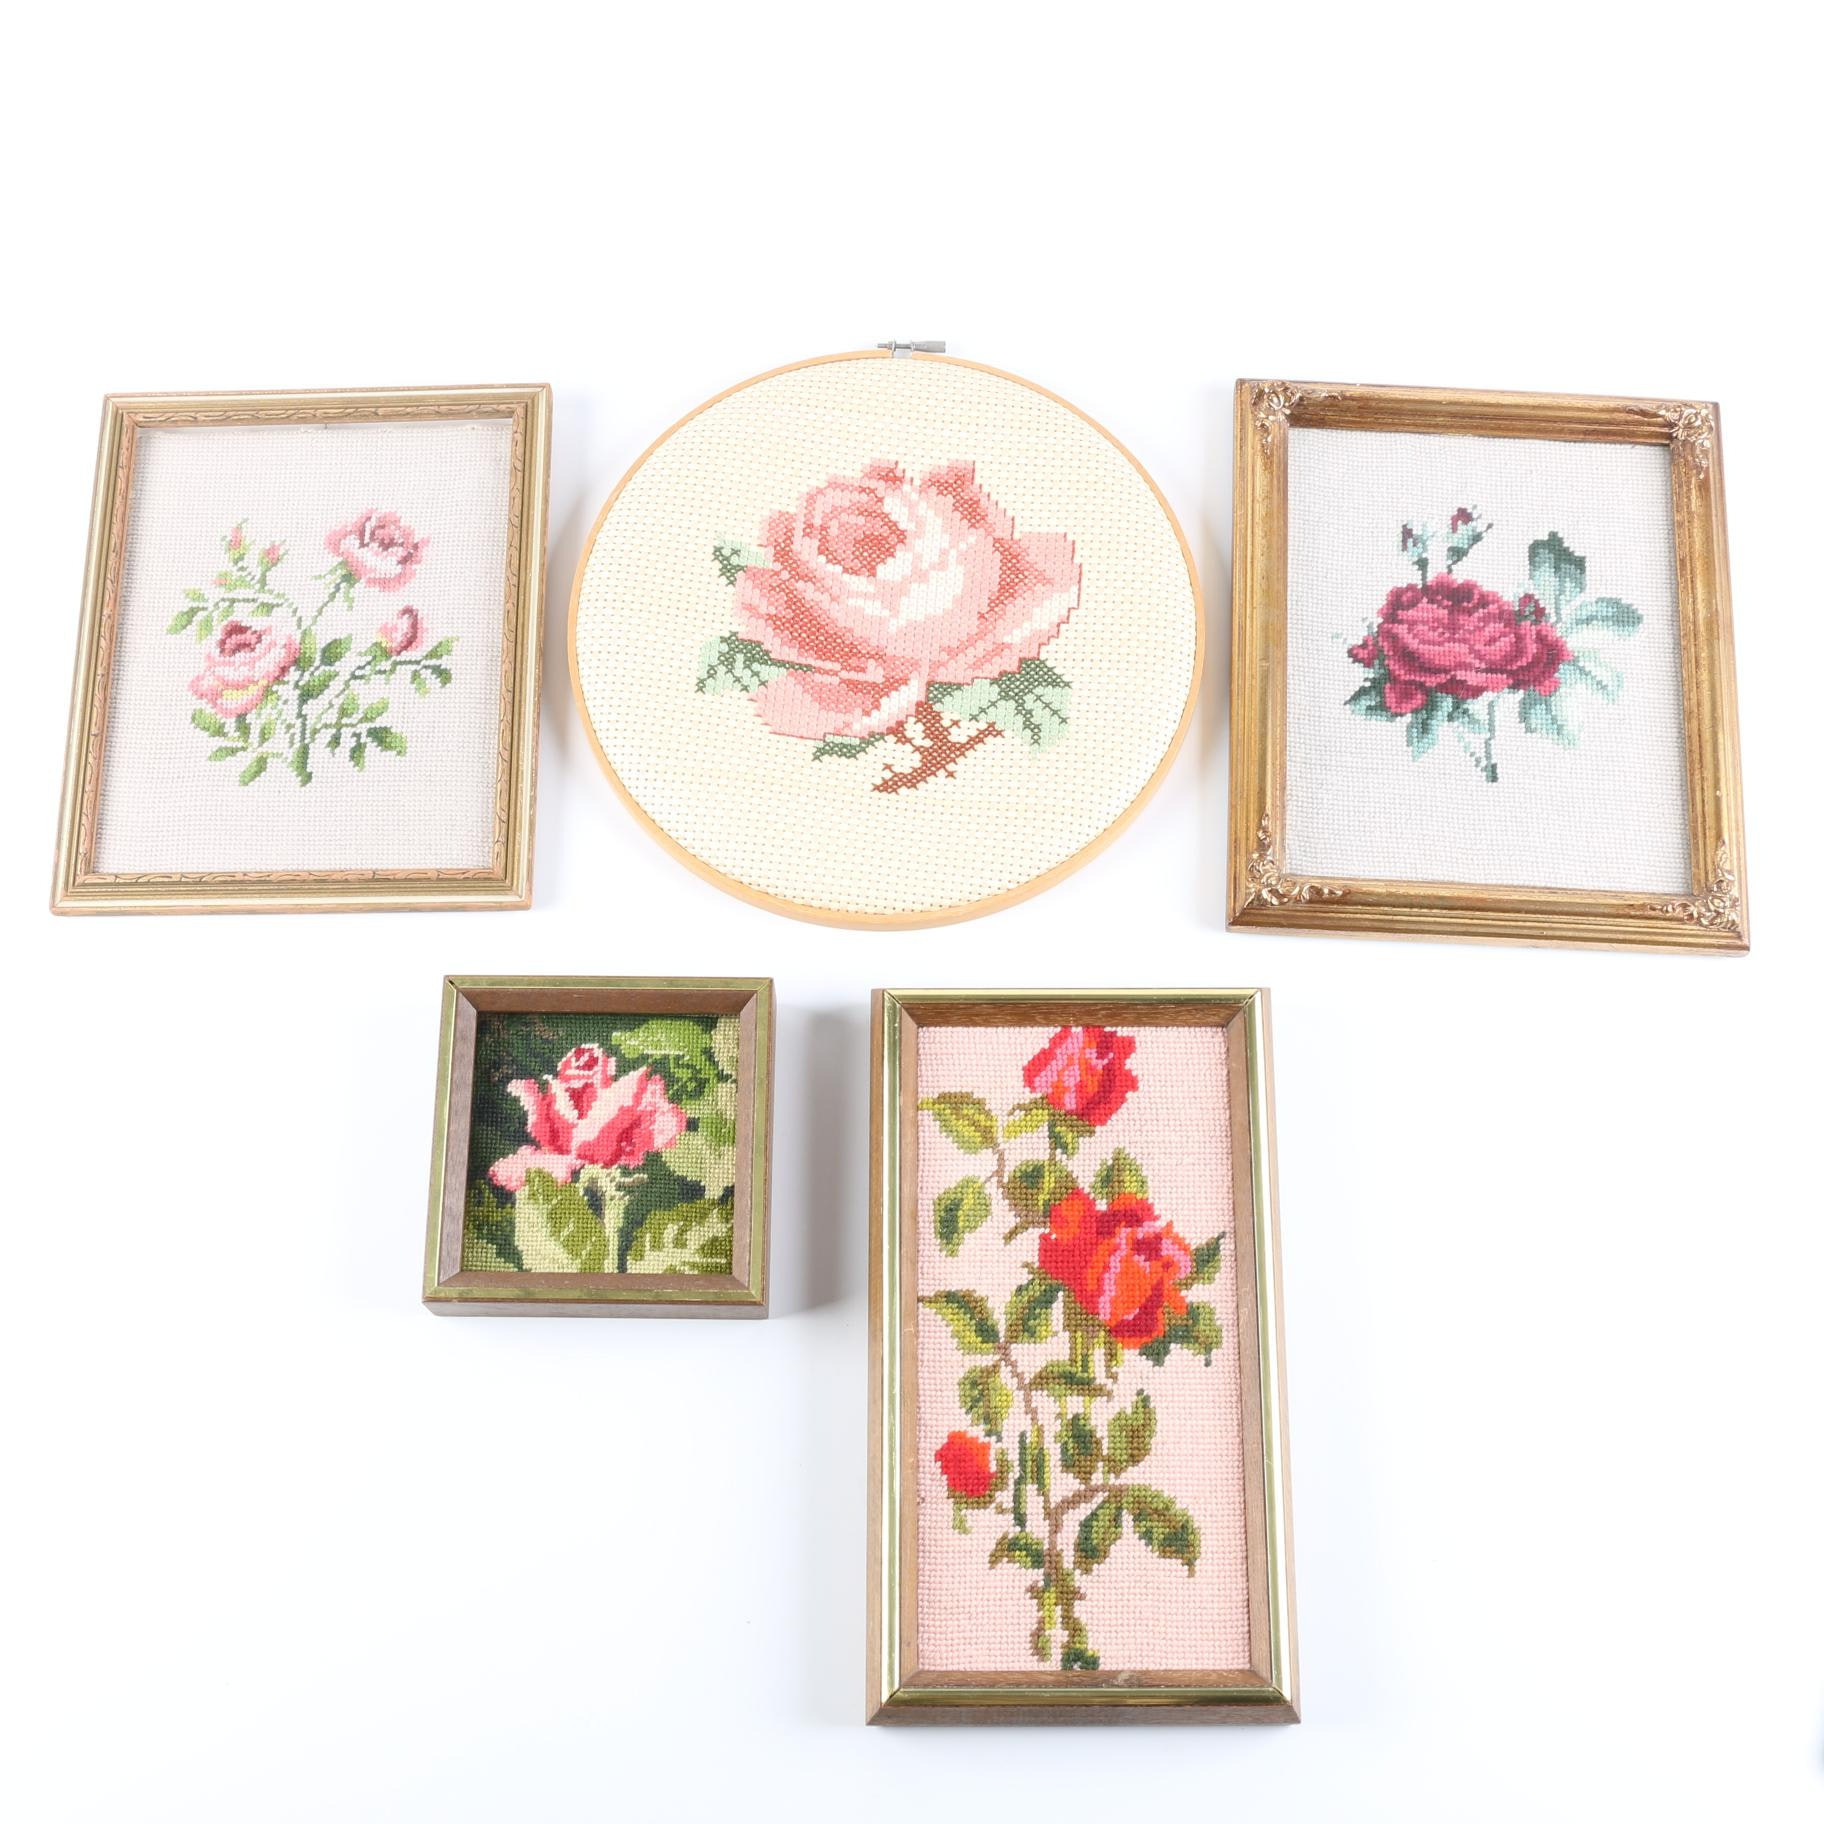 Floral Cross Stitch and Embroidered Pieces